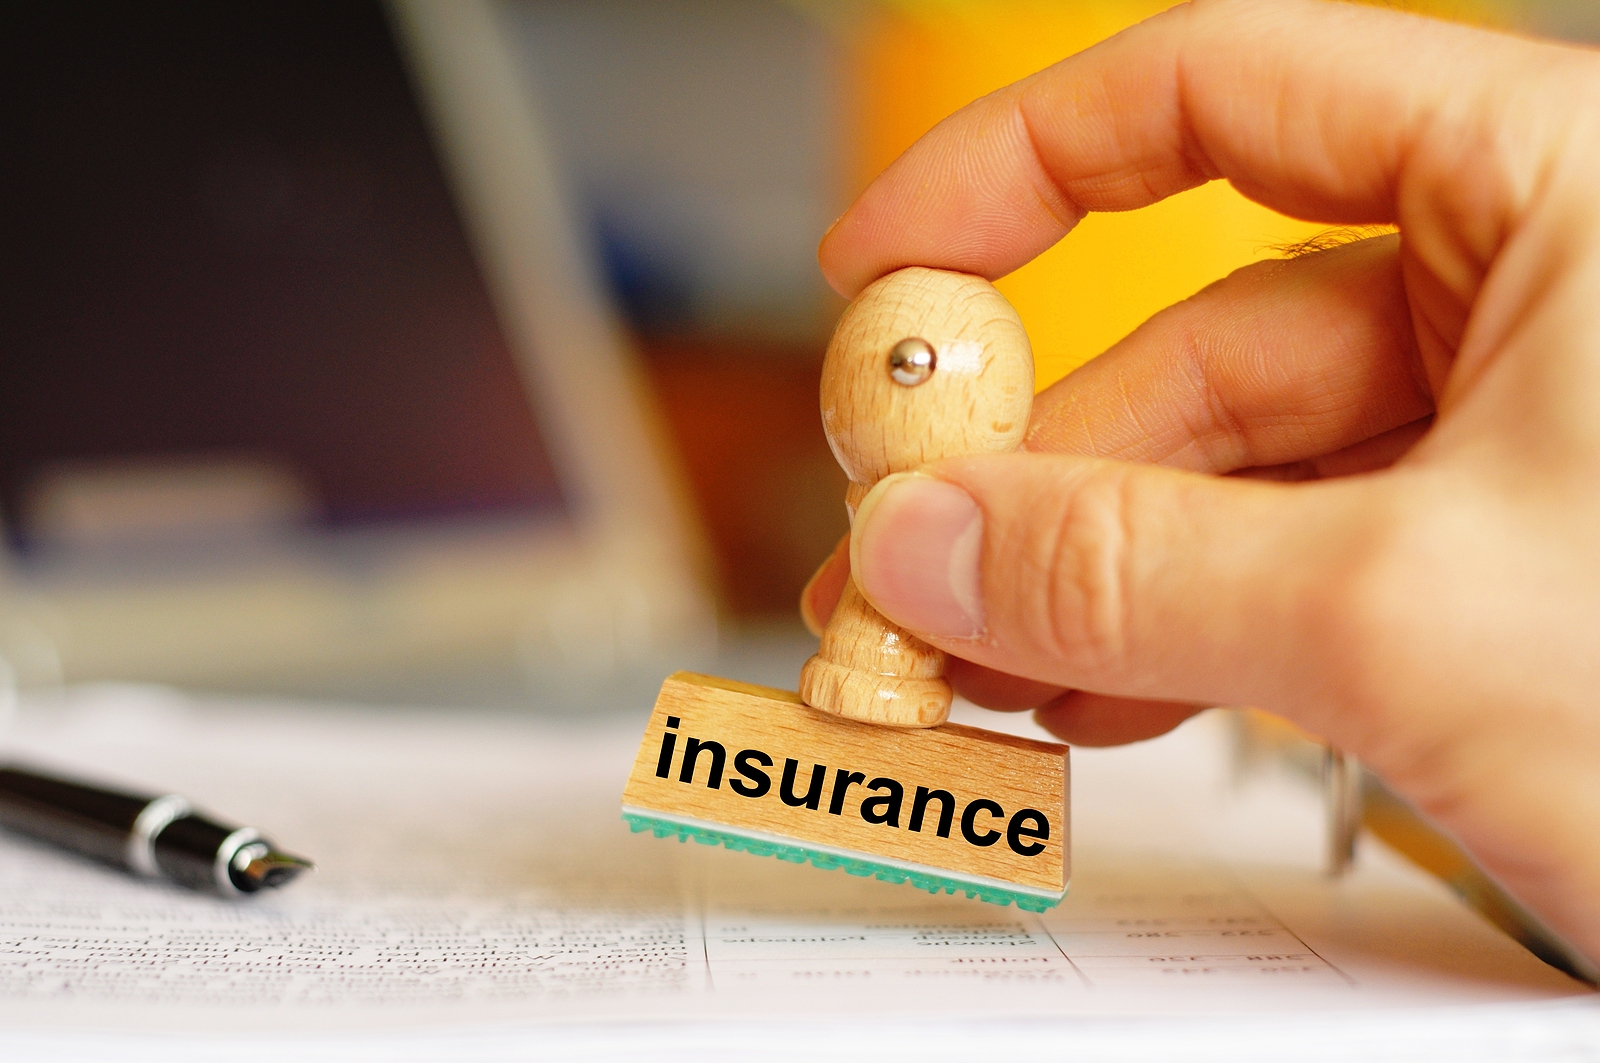 Art insurance policy